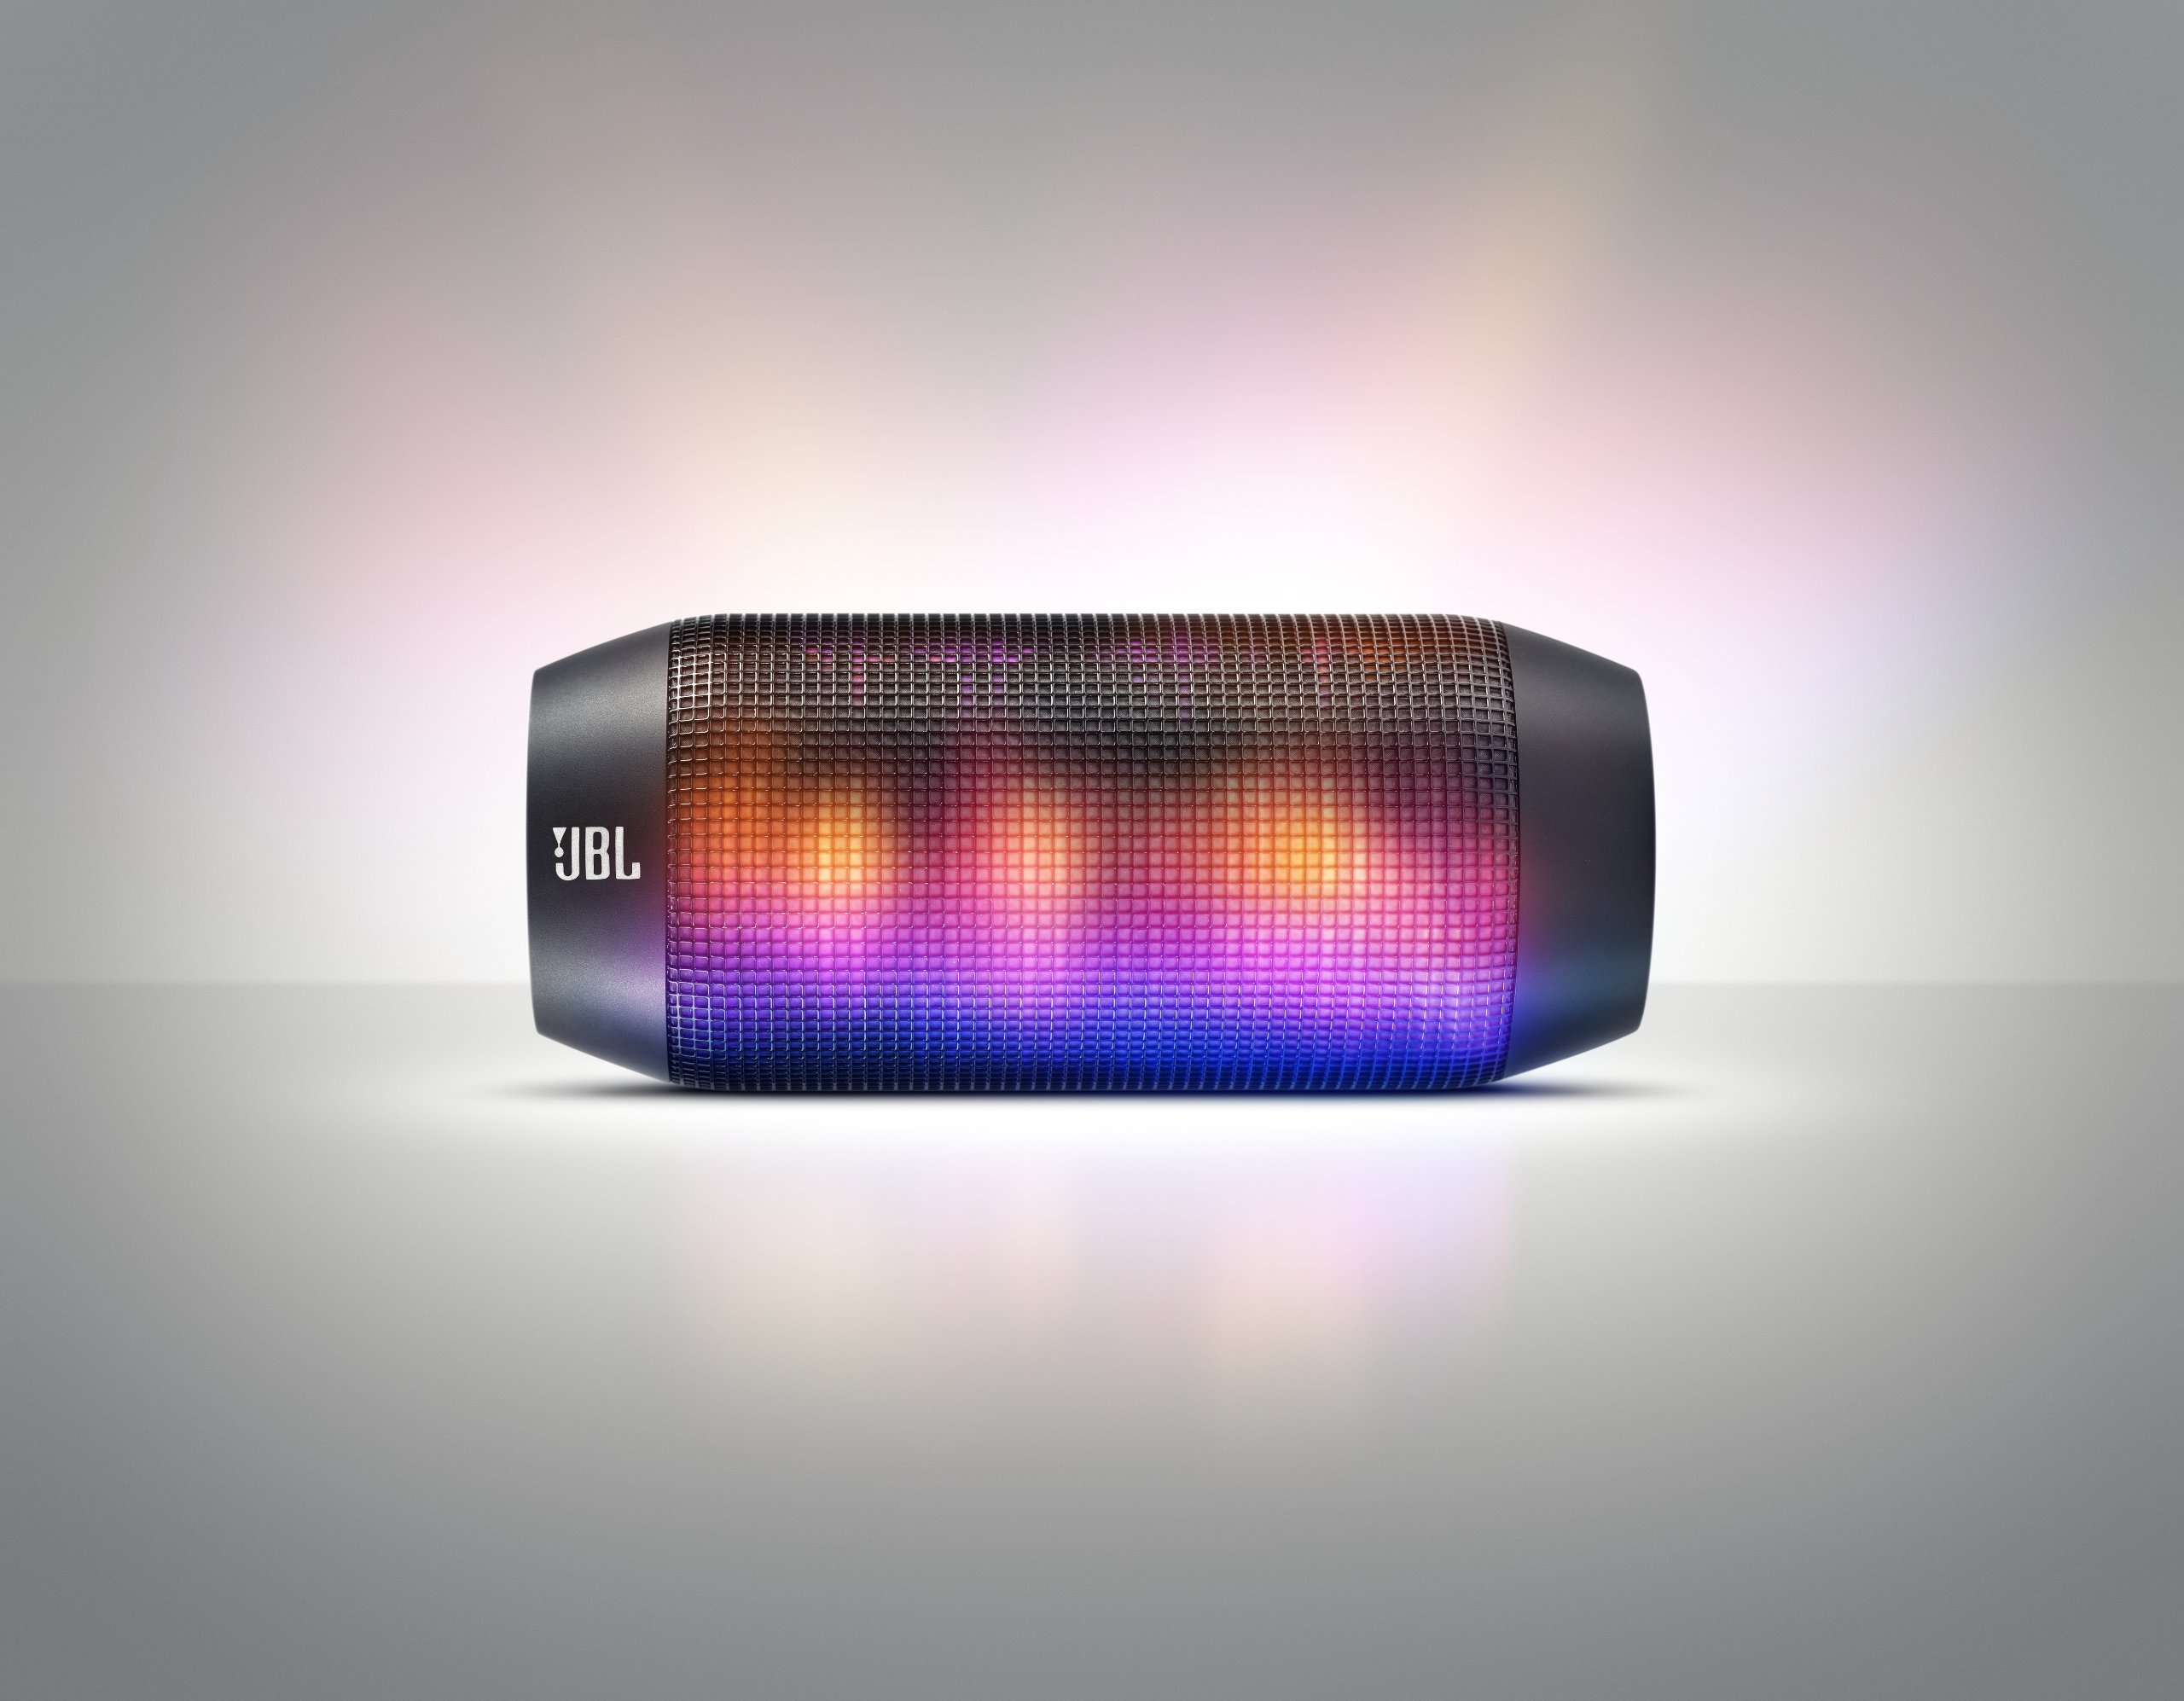 JBL Pulse Wireless Bluetooth Speaker with LED lights and NFC Pairing (Black) by JBL (Image #9)